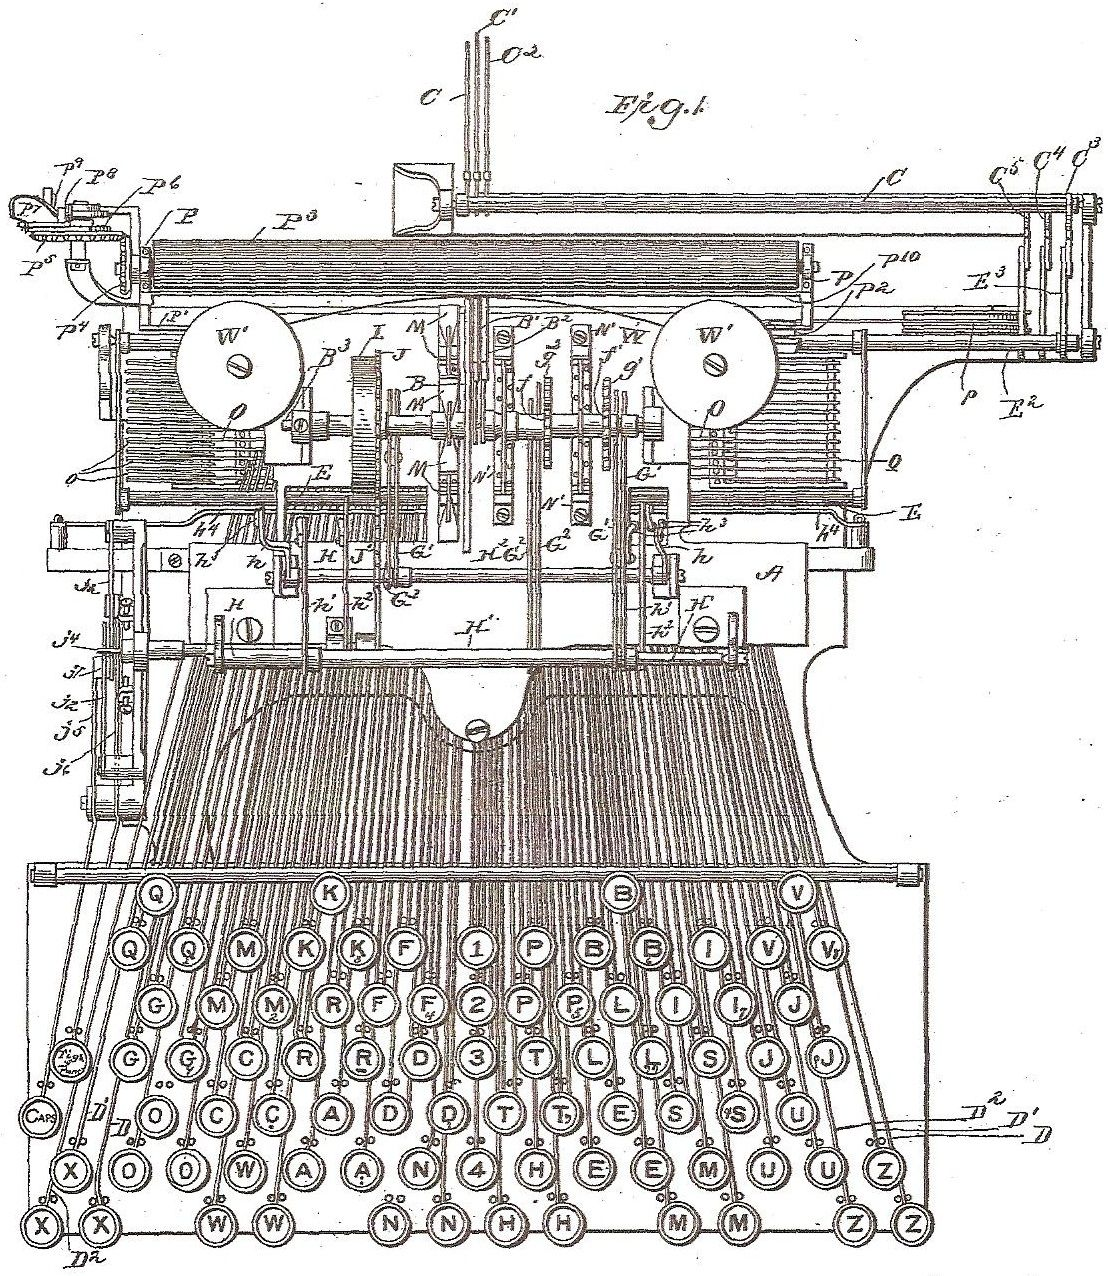 Typewriter Diagram Infinite Images Pinterest Drawings Patent Oliver 1850 Wiring Free Download Schematic George Morris Drawing Typewriters Inventions Days In